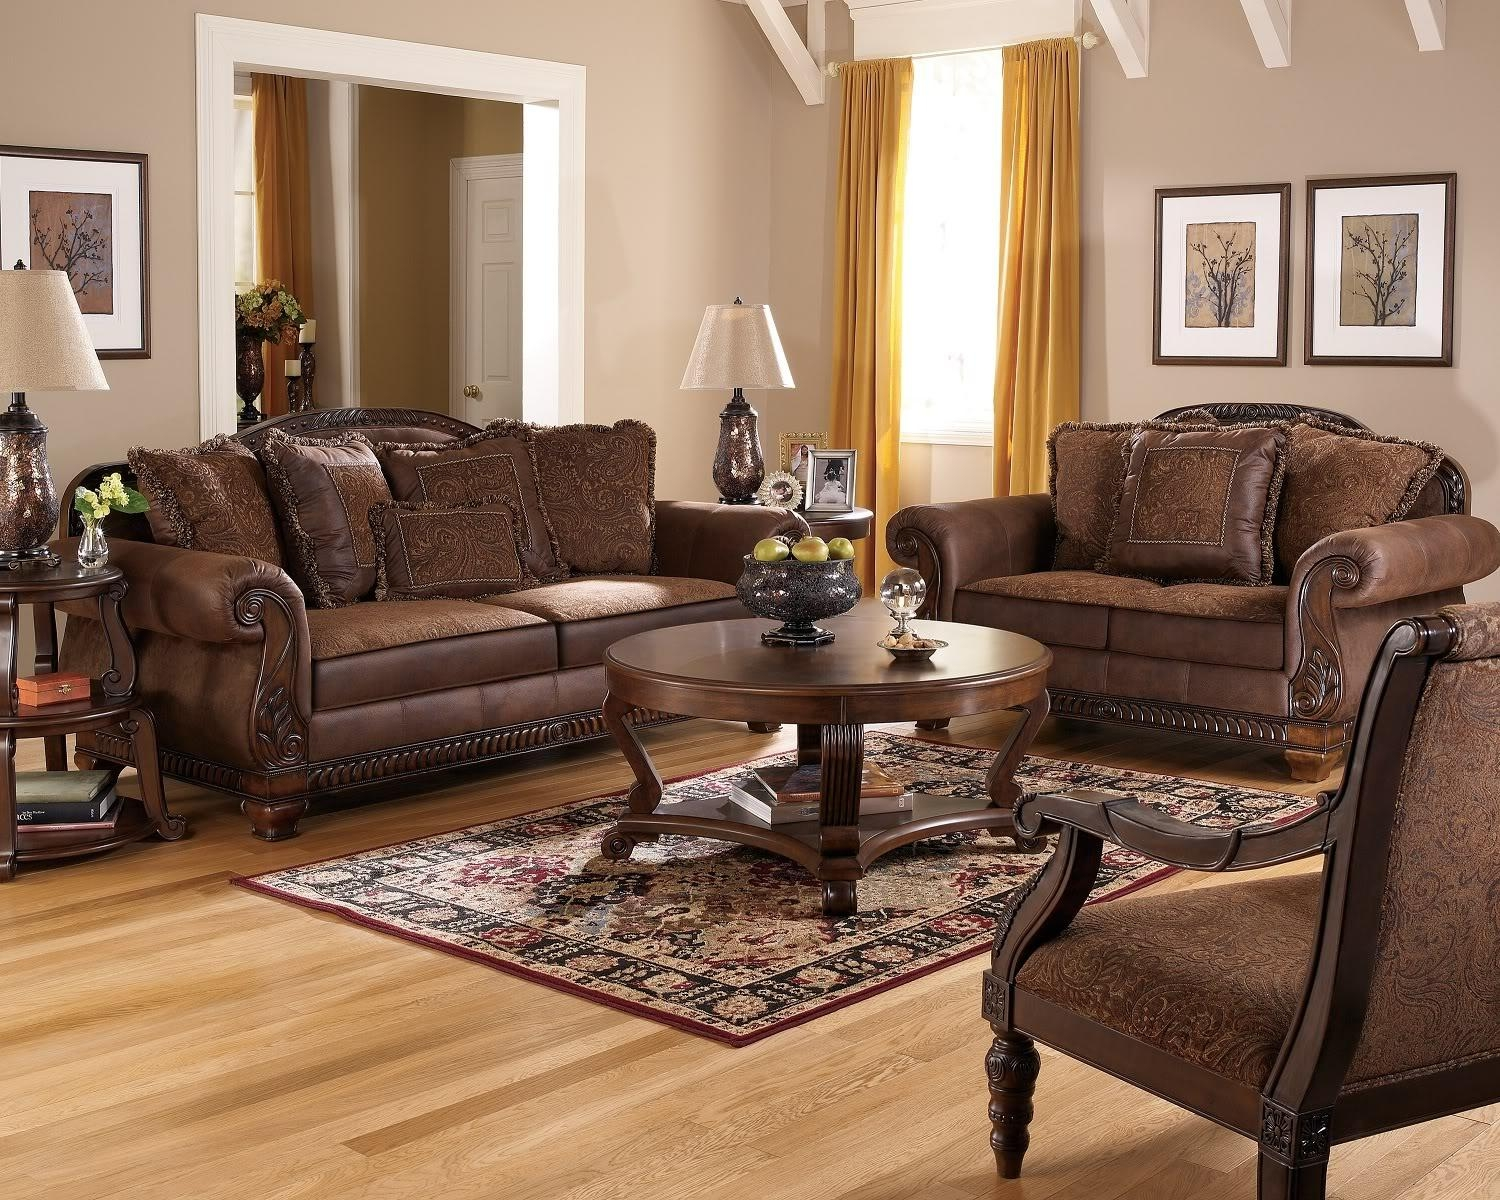 Astonishing Traditional Sectional Sofas Living Room Furniture 62 Inside Bradley Sectional Sofas (Image 2 of 20)